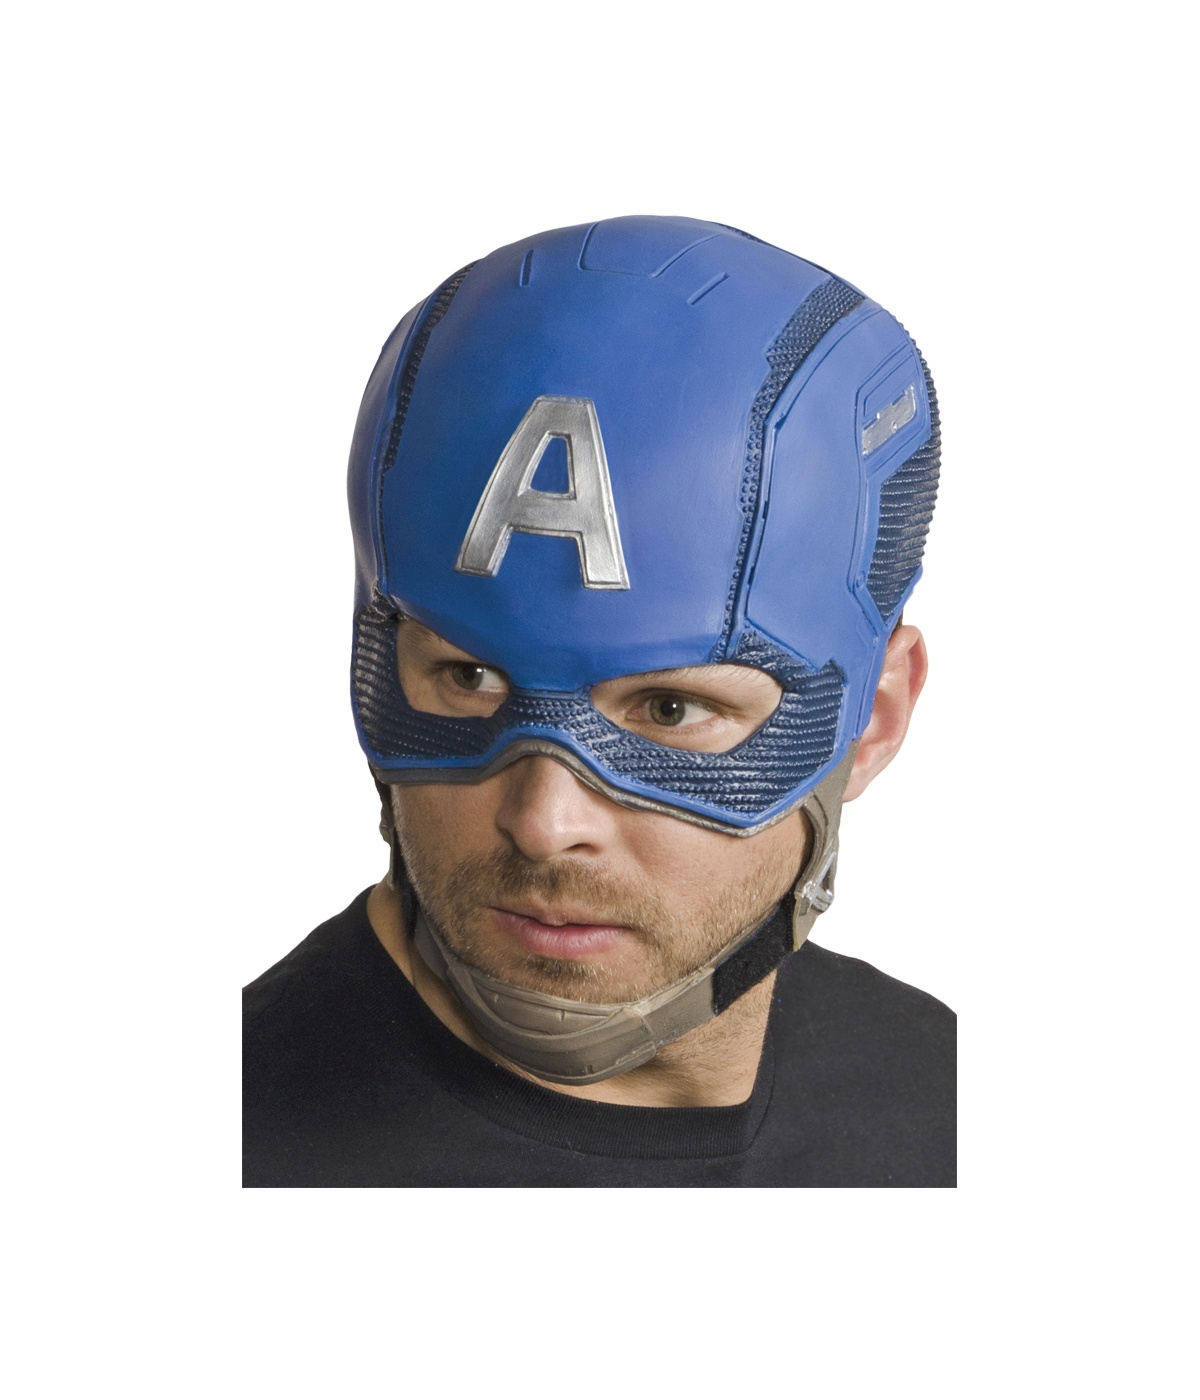 Marvels Avenger S Captain America Full Mask Masks